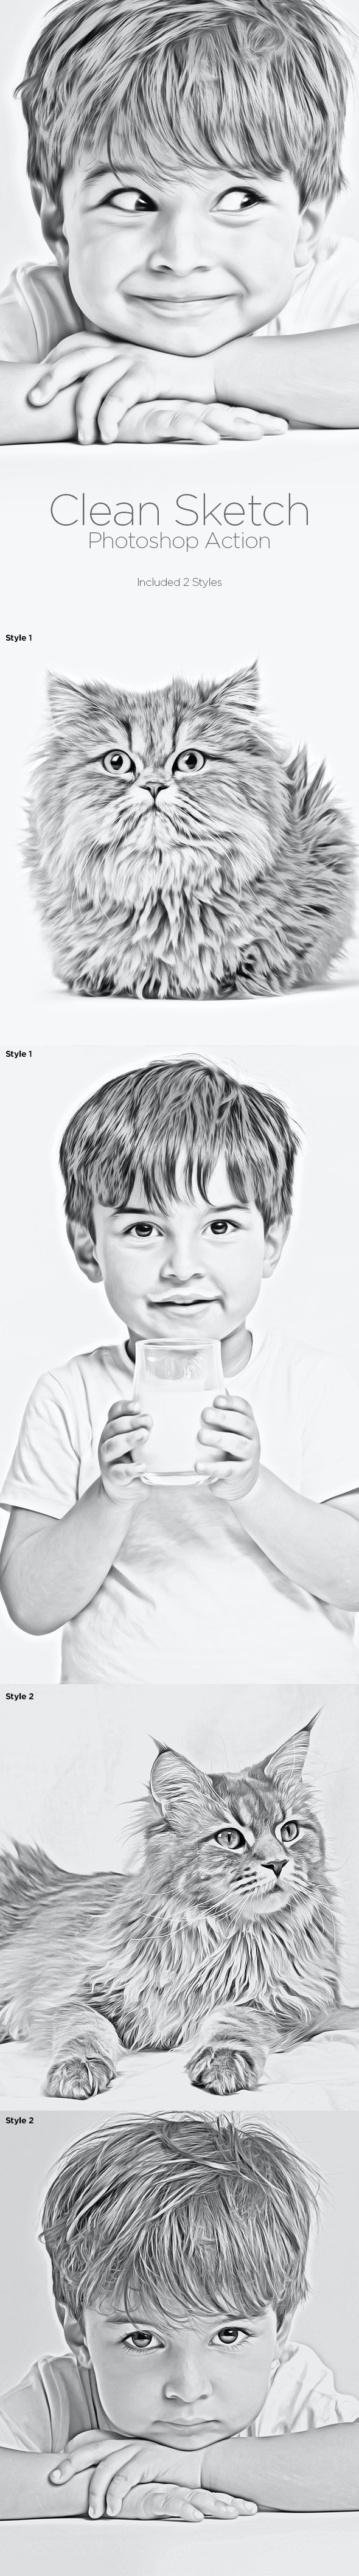 Clean Sketch - Photoshop Action - Photo Effects Actions